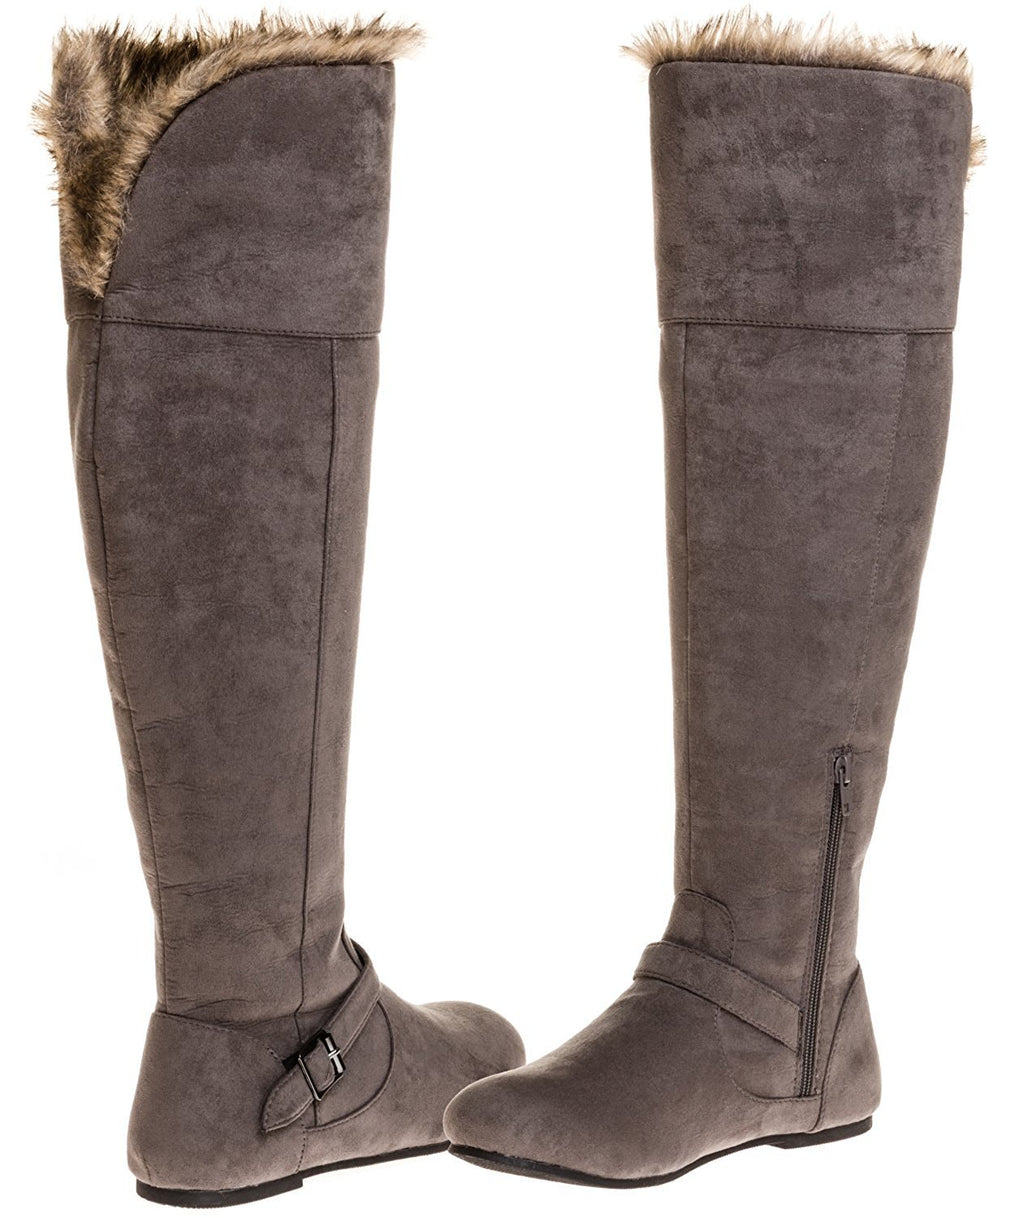 Sara Z Ladies Over The Knee Microsuede Fur Lined Boot (Grey), Size 8